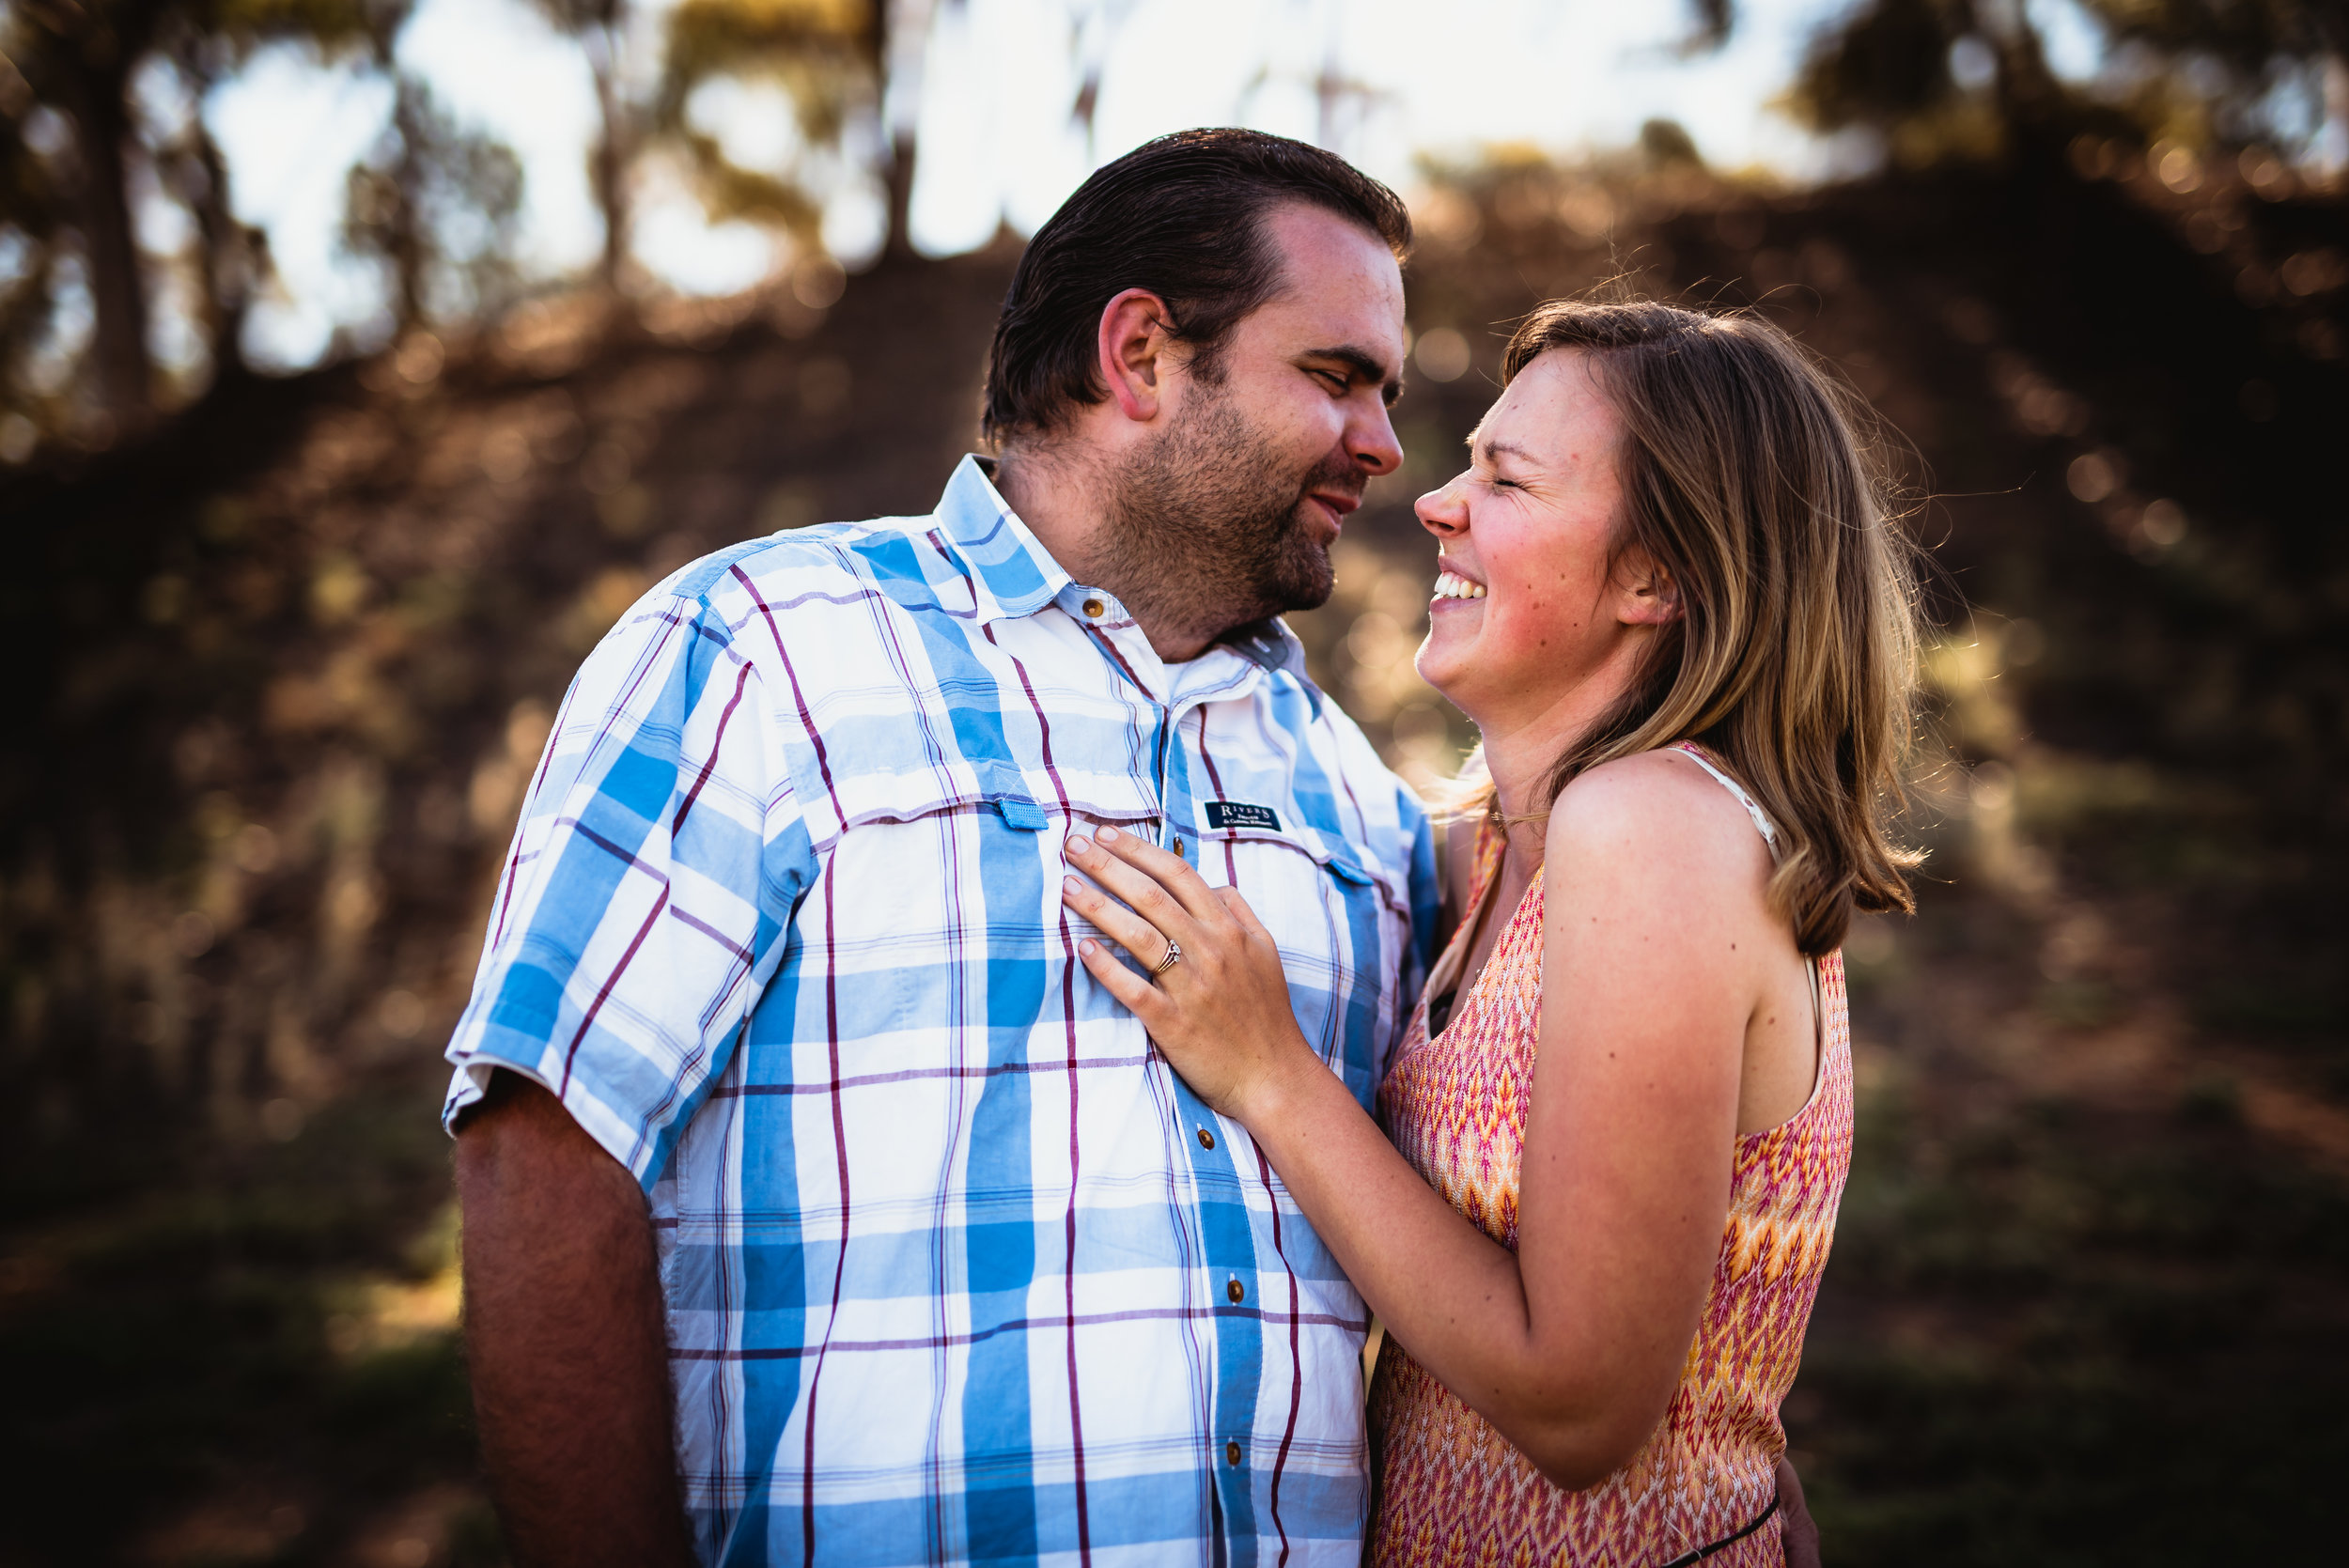 Jane Portnoff: Adelaide Engagement and Couples Photography